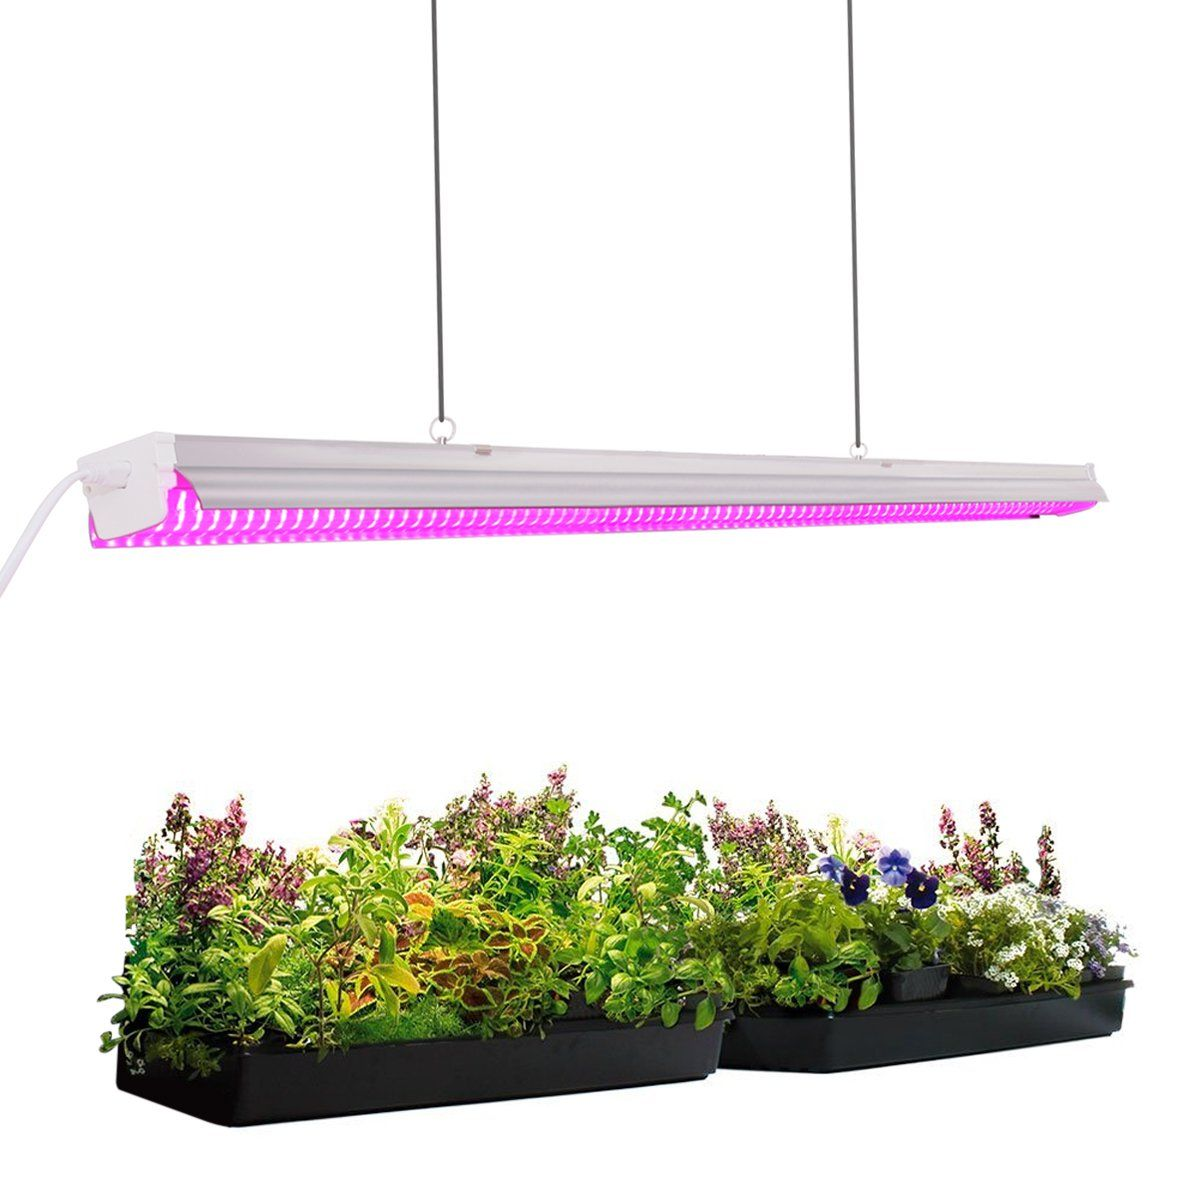 Byingo 4ft 64w Plant Growth Light Led Integrated Lamp Fixture Plug And Play Full Spectrum For Indoor Grow Lights For Plants Led Grow Lights Planting Flowers